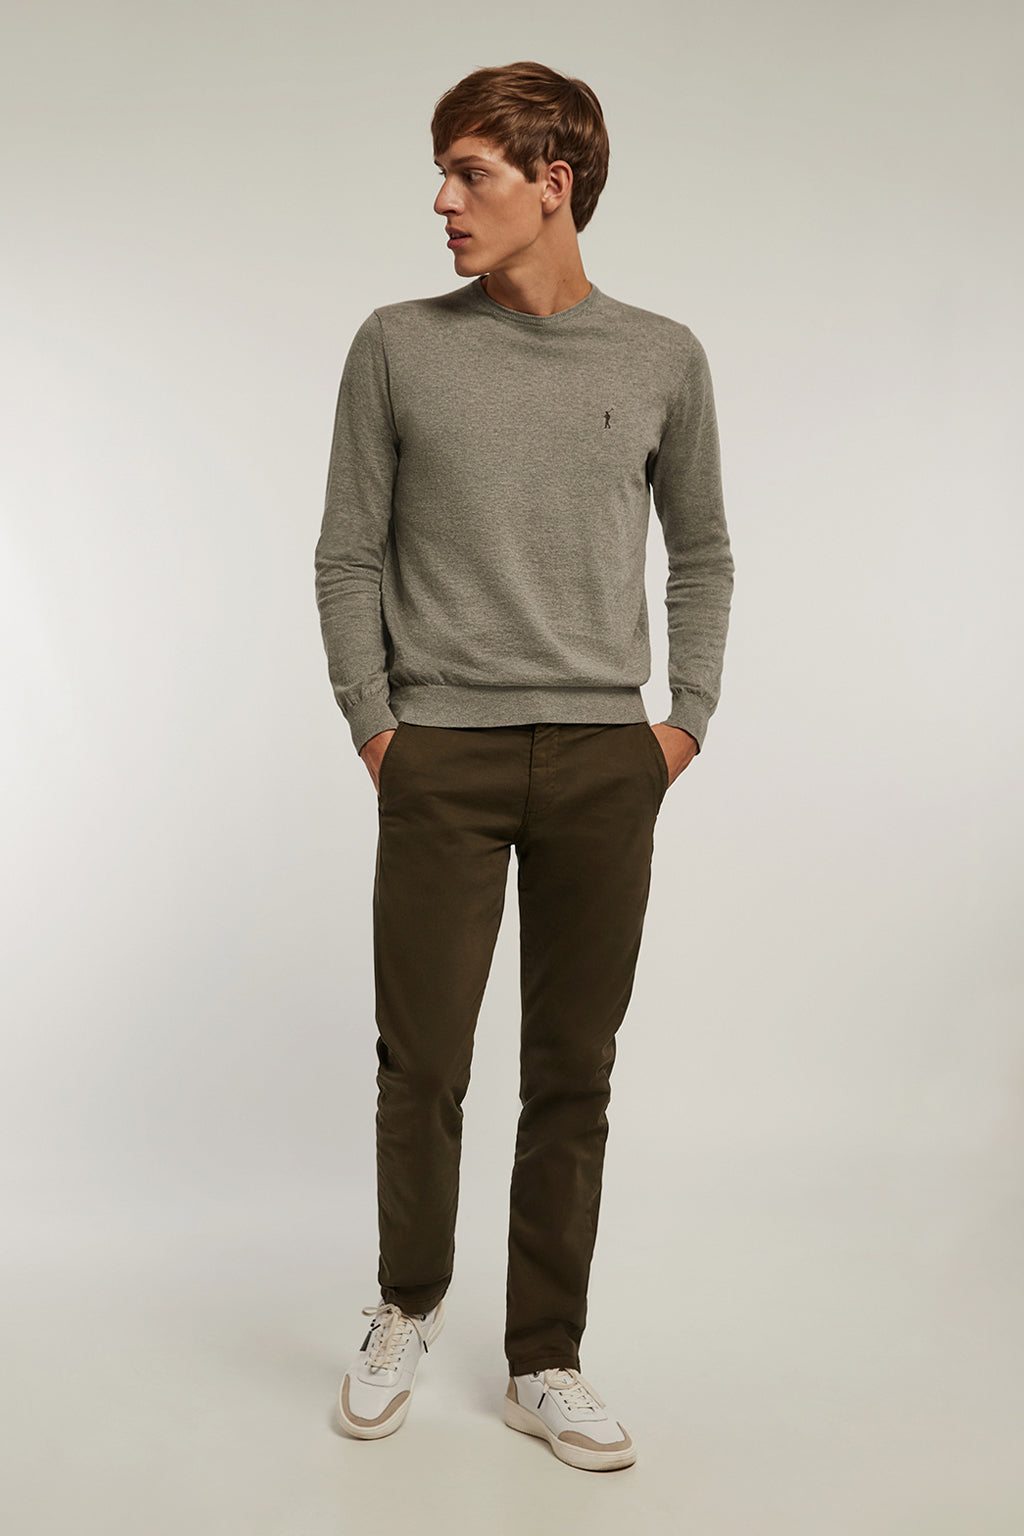 Khaki custom fit chinos